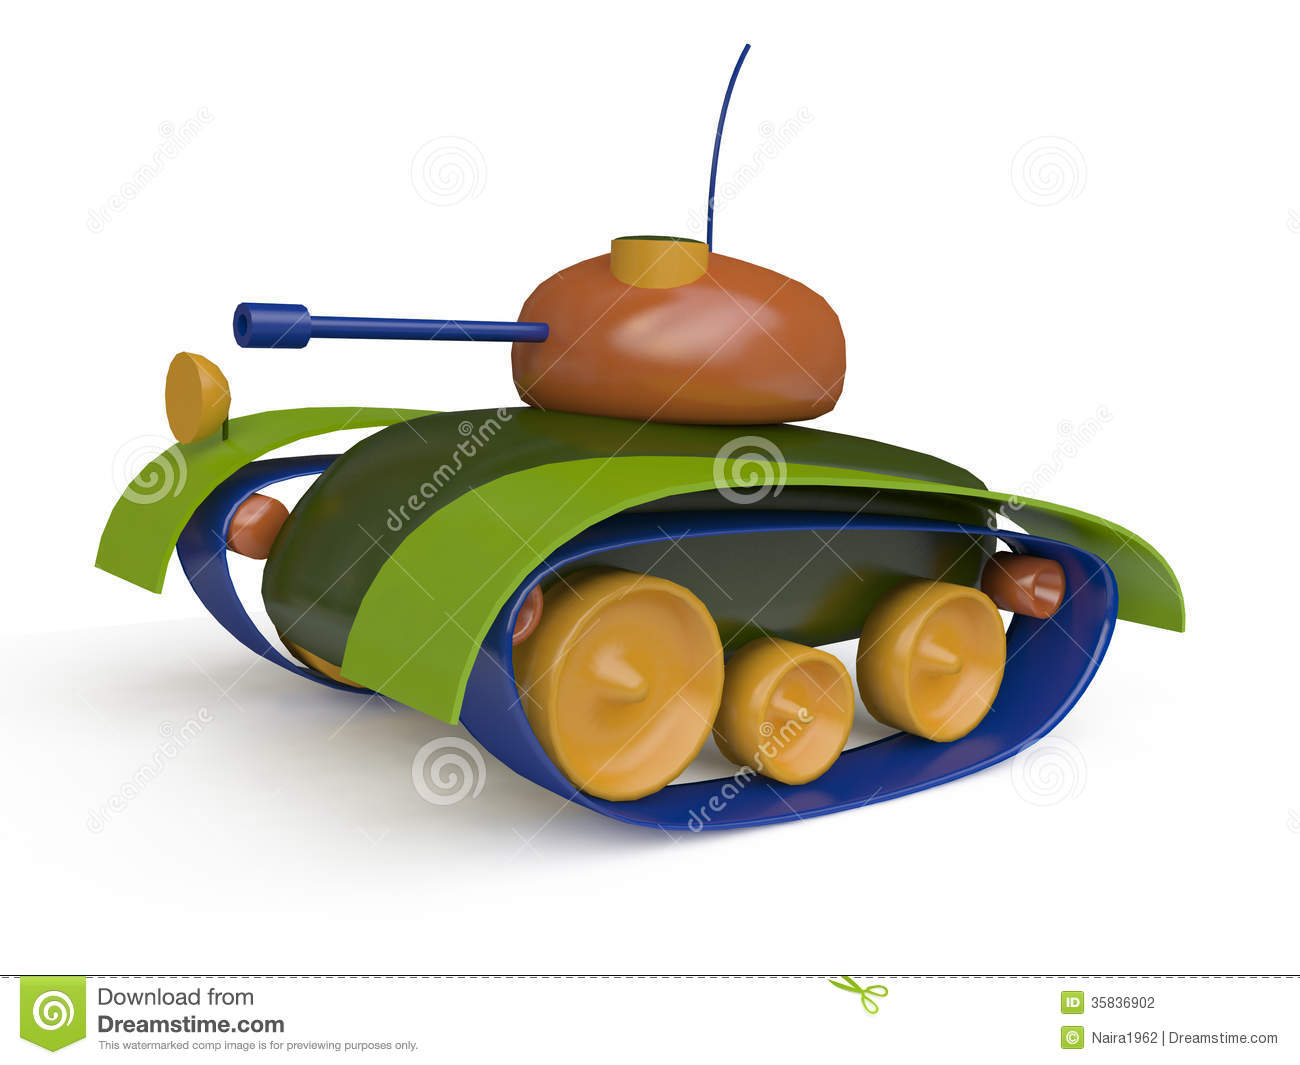 Wooden Toy Tank - Viewing Gallery